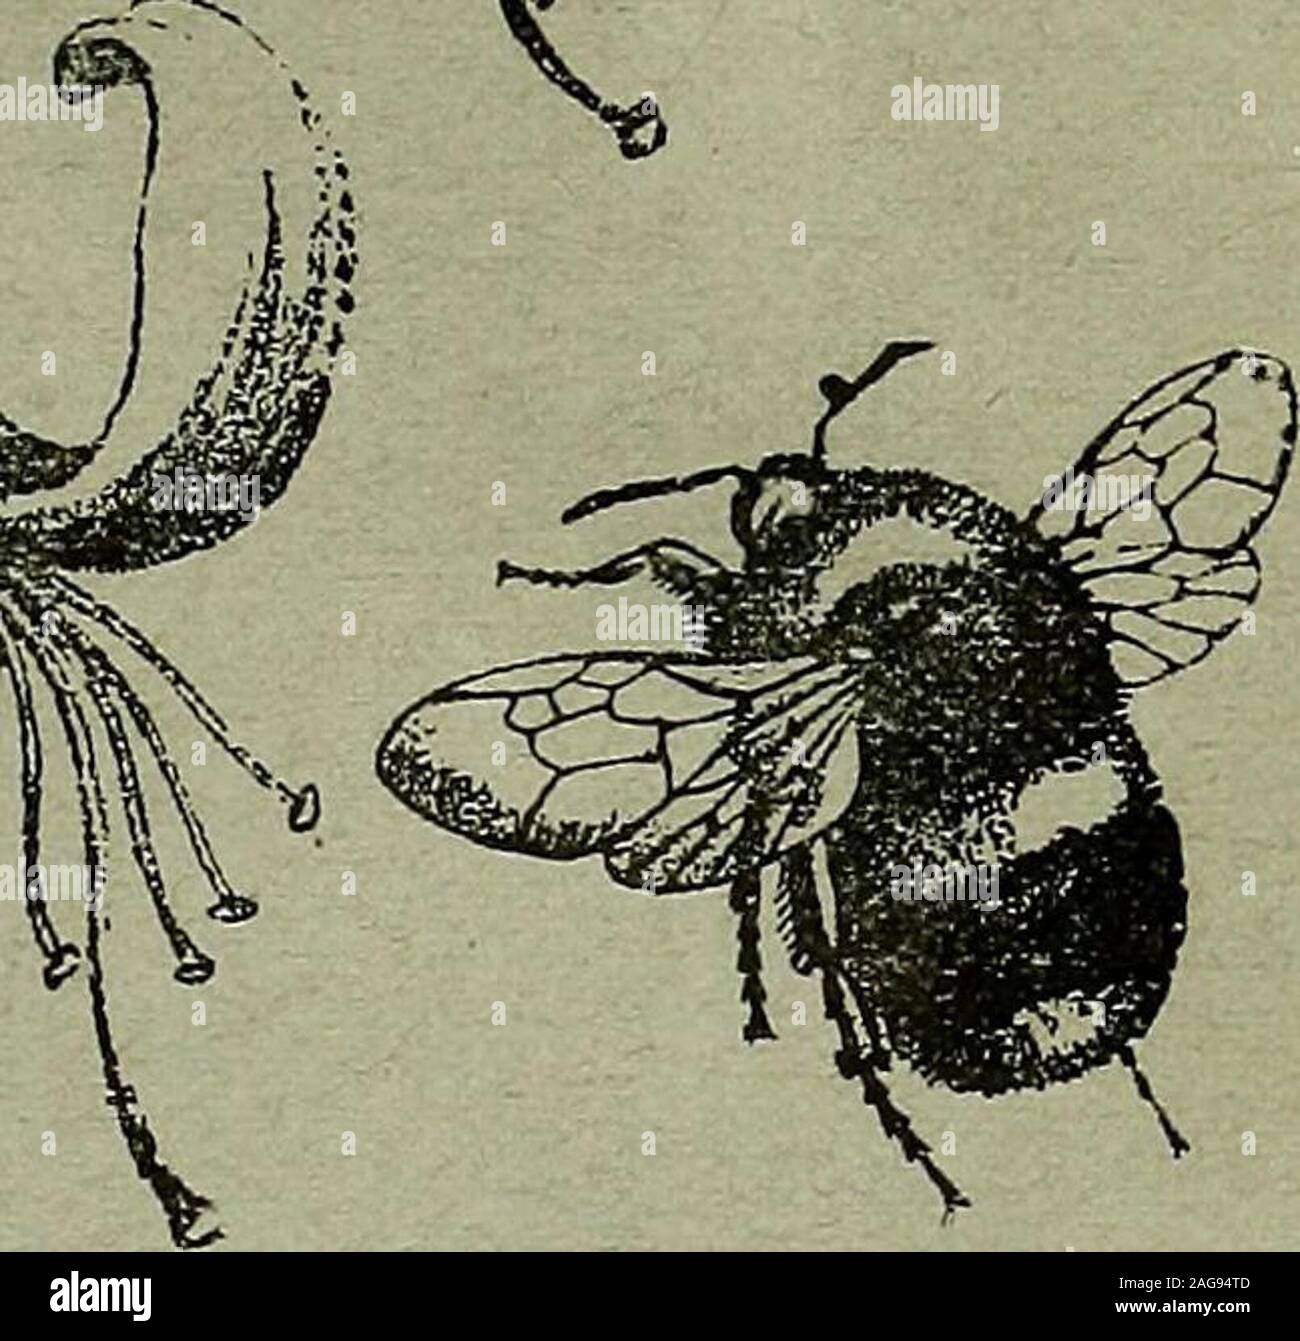 . The Entomologist's record and journal of variation. THE ENTOMOLOGISTS RECORD AND JOURNAL OF VARIATION Edited by J. yv. TUTT, F.E.S. Assisted by T. HUDSON BEARE, b.sc, f.e.s., f.r.s.e.M. BURR, B.A.,r<z.s., f.l.s., t.e.s. T. A. CHAPMAN, m.d., i-.z.s., f.e.s.Jas. E. COLLIN, F.E.S. H. St. J.K.DONISTHORPE f.z.s. f.e.s SEPTEMBER 15th, 1906. ^ Price SIXPENCE (net). (WITH PLATE.) Subscription for Complete Volume, post free (Including all DOUBLE NUMBERS, etchSEVEN SHILLINGS, TO BE FORWARDED TO J. HERBERT TUTT, 119, Westcombe Hill, Bi.ackheath, London, S.E. Stock Photo